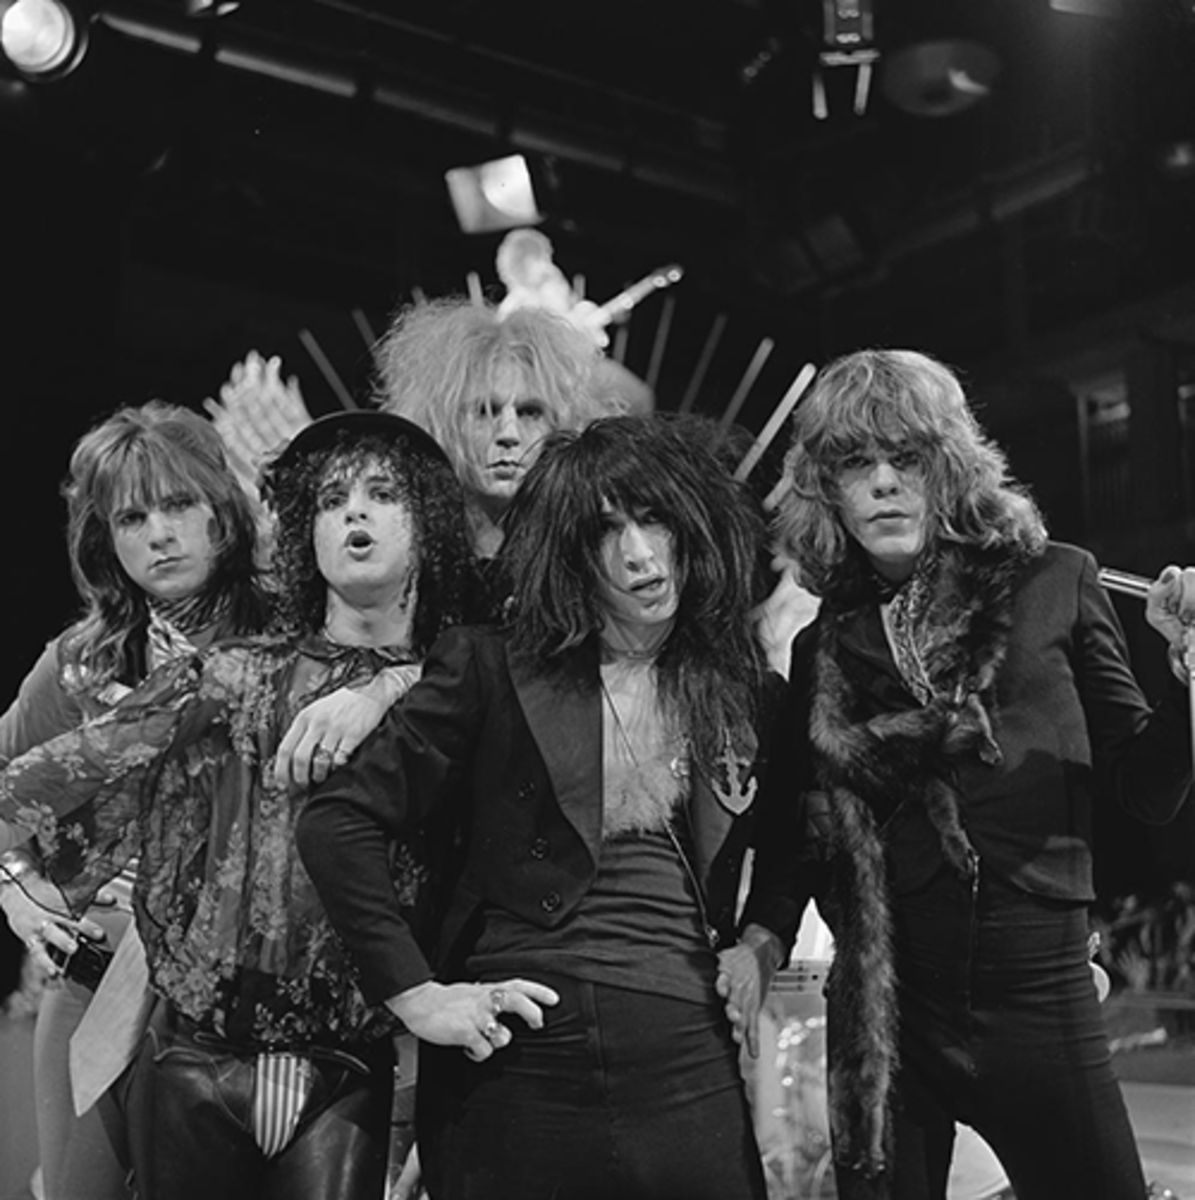 The New York Dolls were an important protopunk band which helped developed what became known as glam punk.